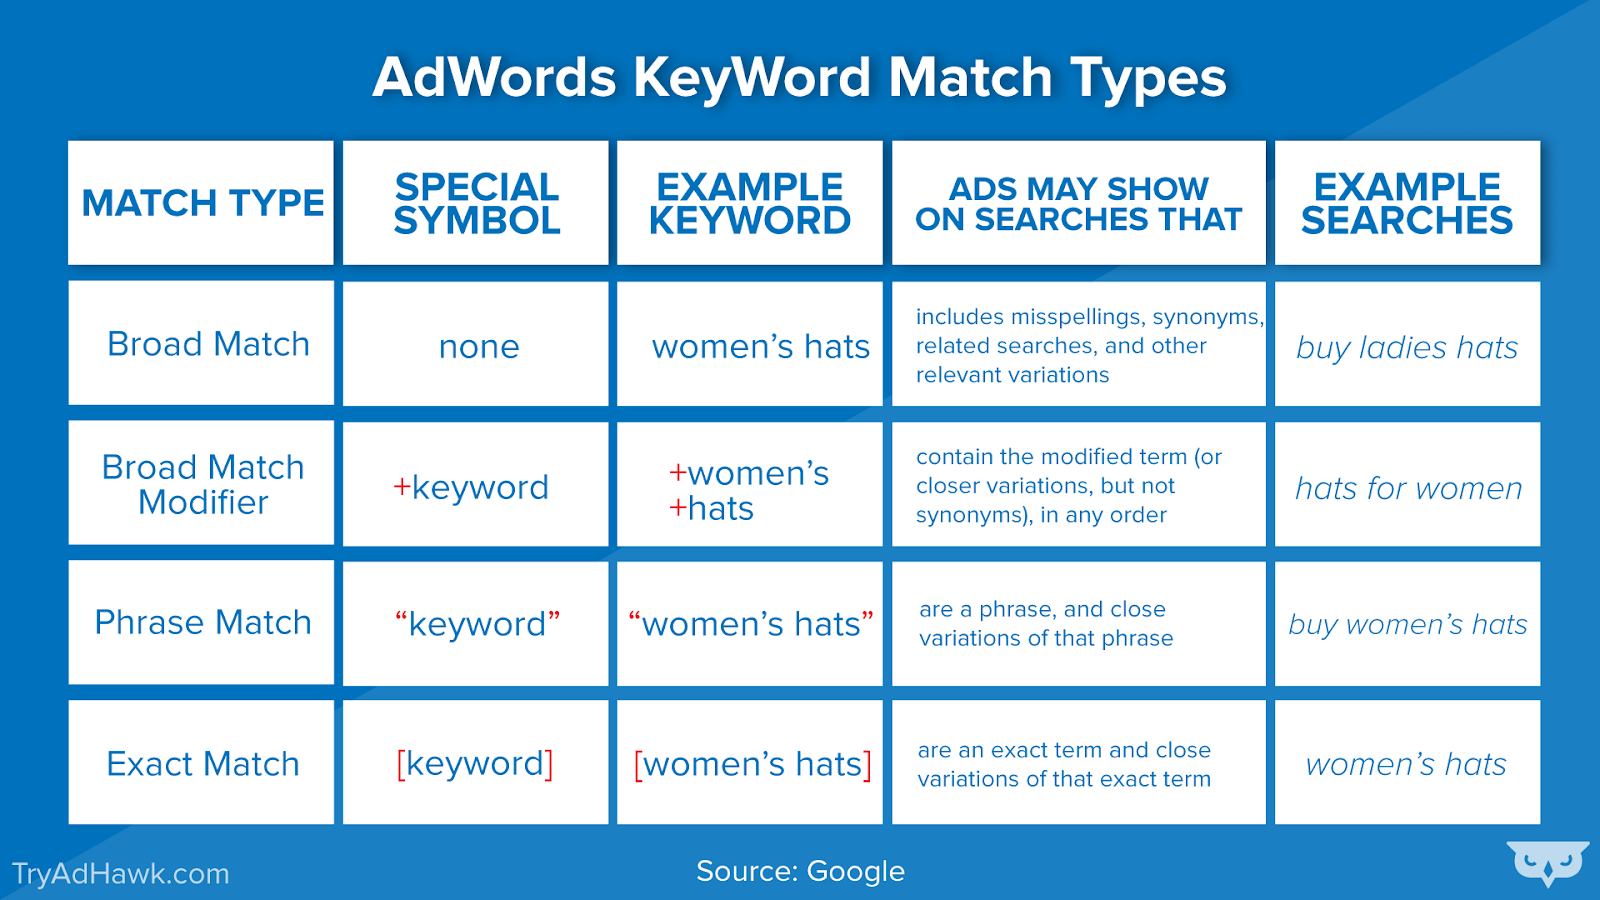 AdWords KeyWord Match Types examples